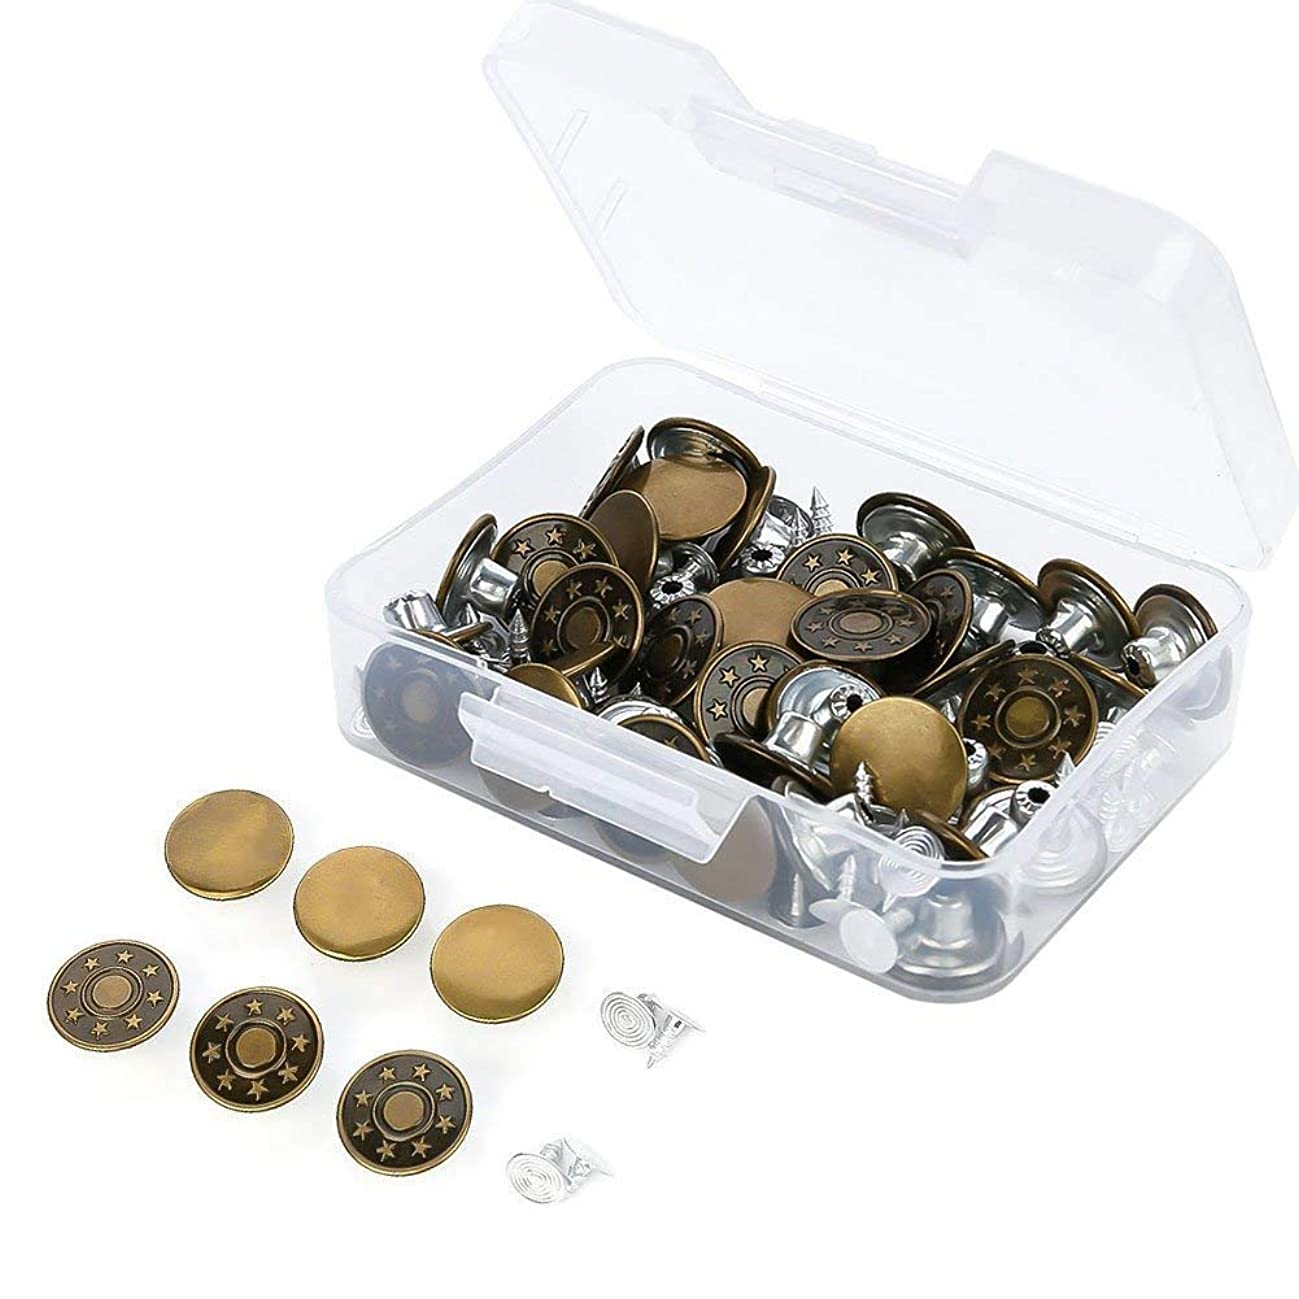 Feihoudei 50 Sets Jeans Buttons Tack Metal Button Snap Buttons Replacement Kit with Rivets and Plastic Storage Box, 2 Styles, Bronze